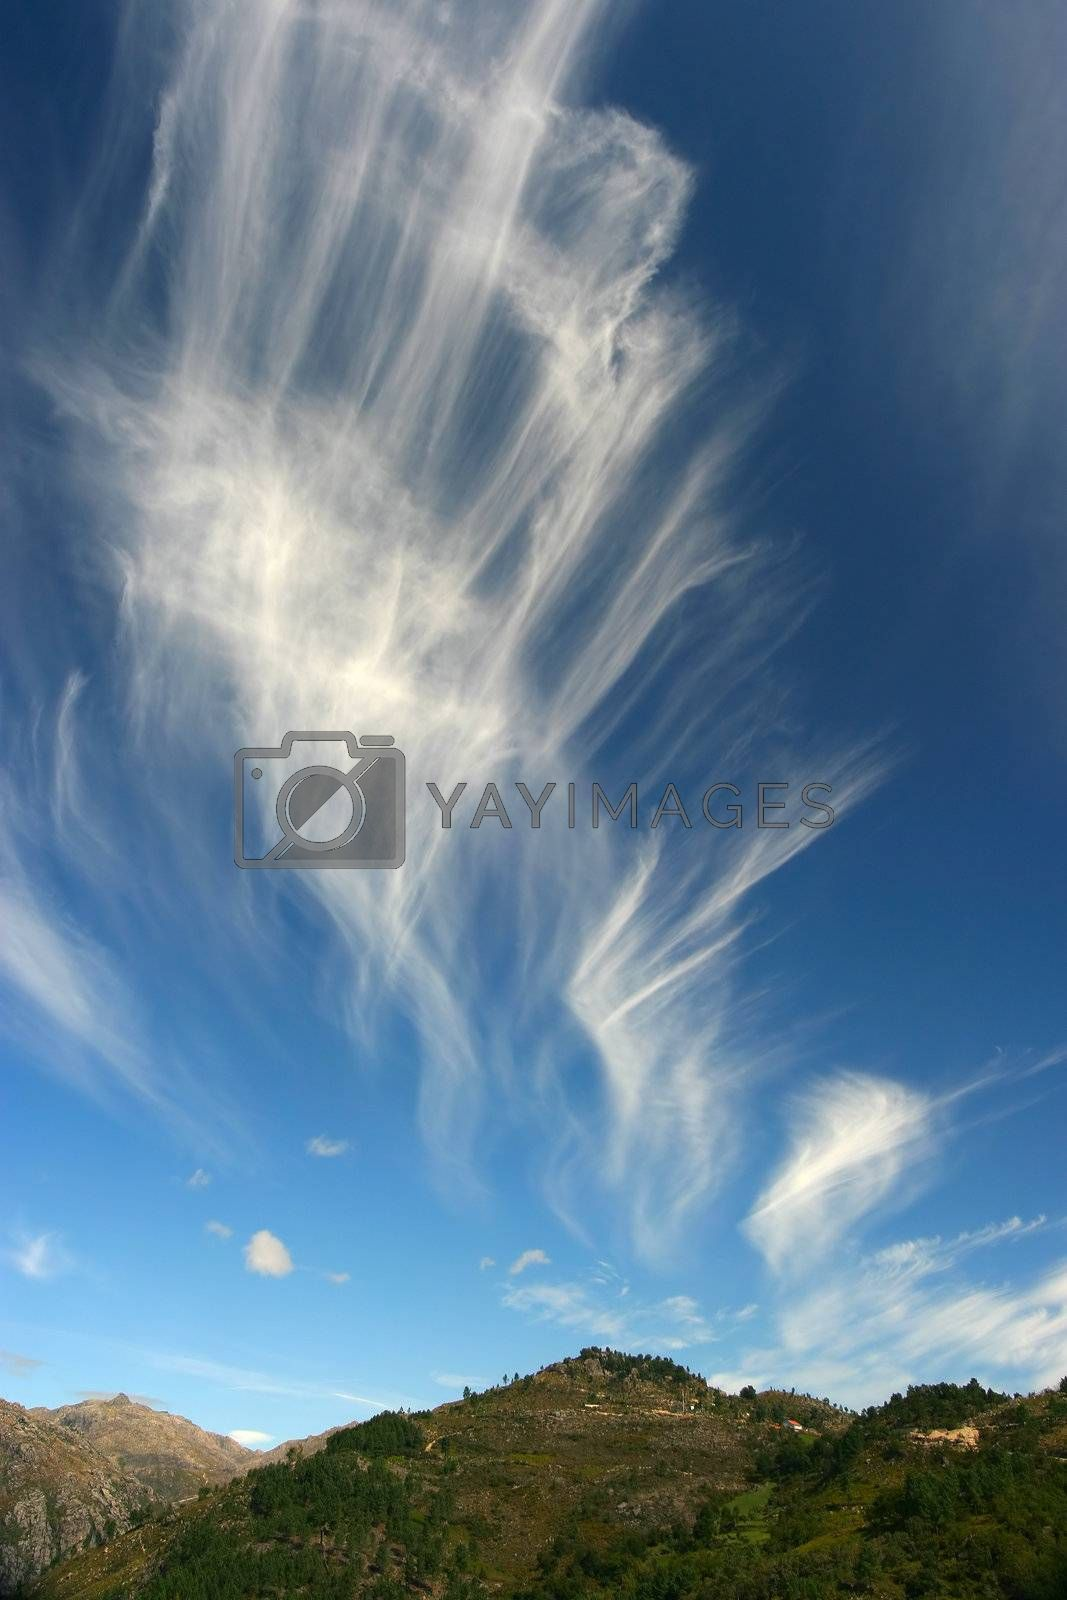 Royalty free image of Dreamy Sky by ajn